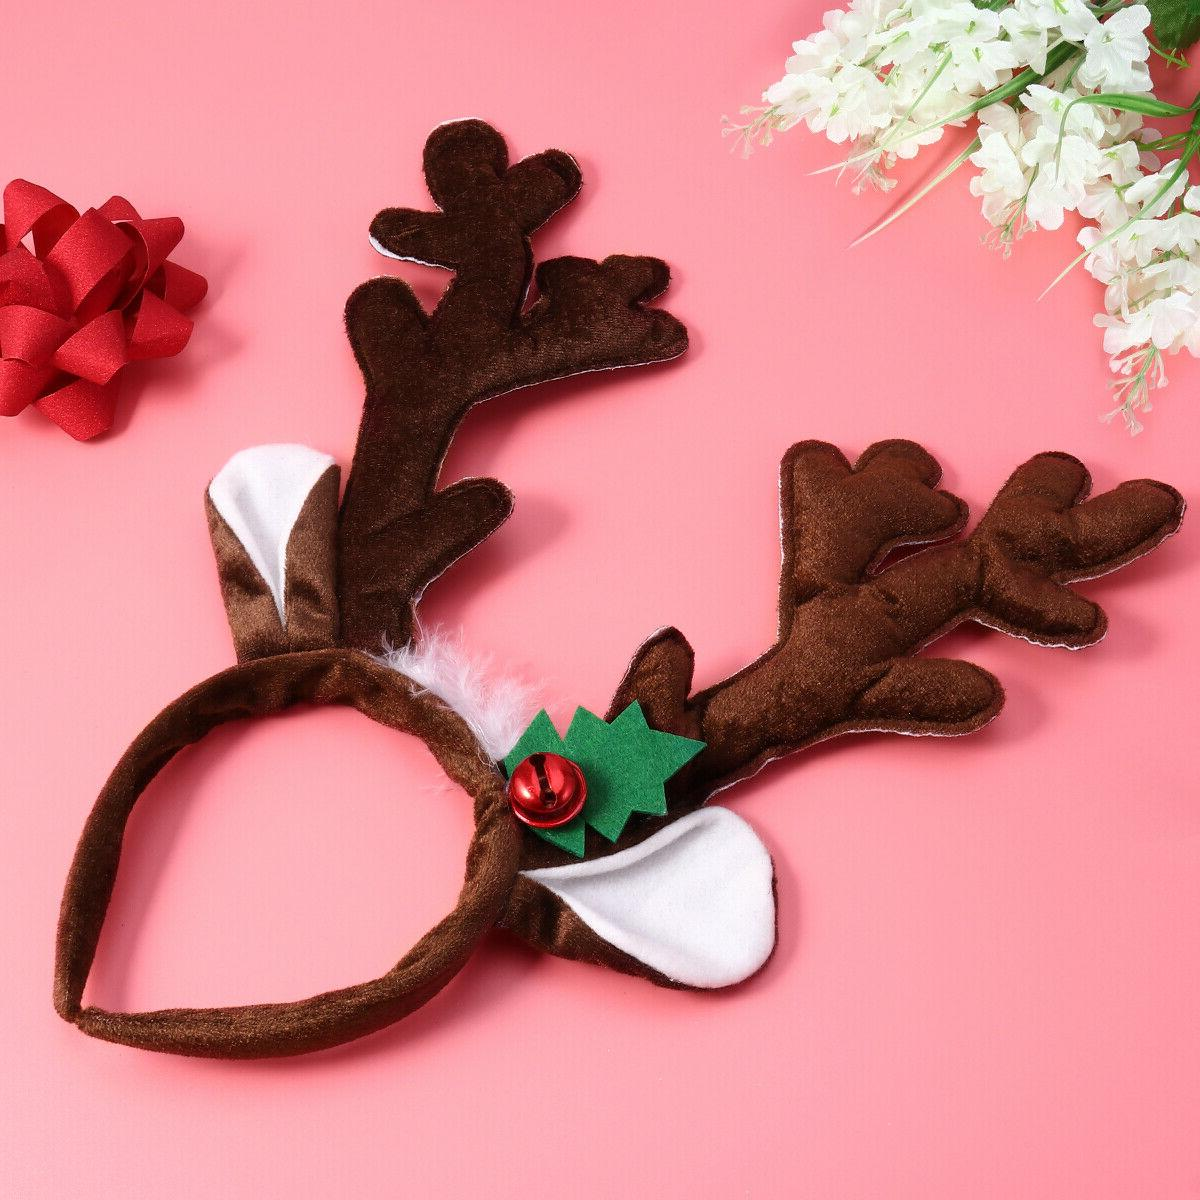 PIXNOR 1PC Antlers Plush Christmas Party